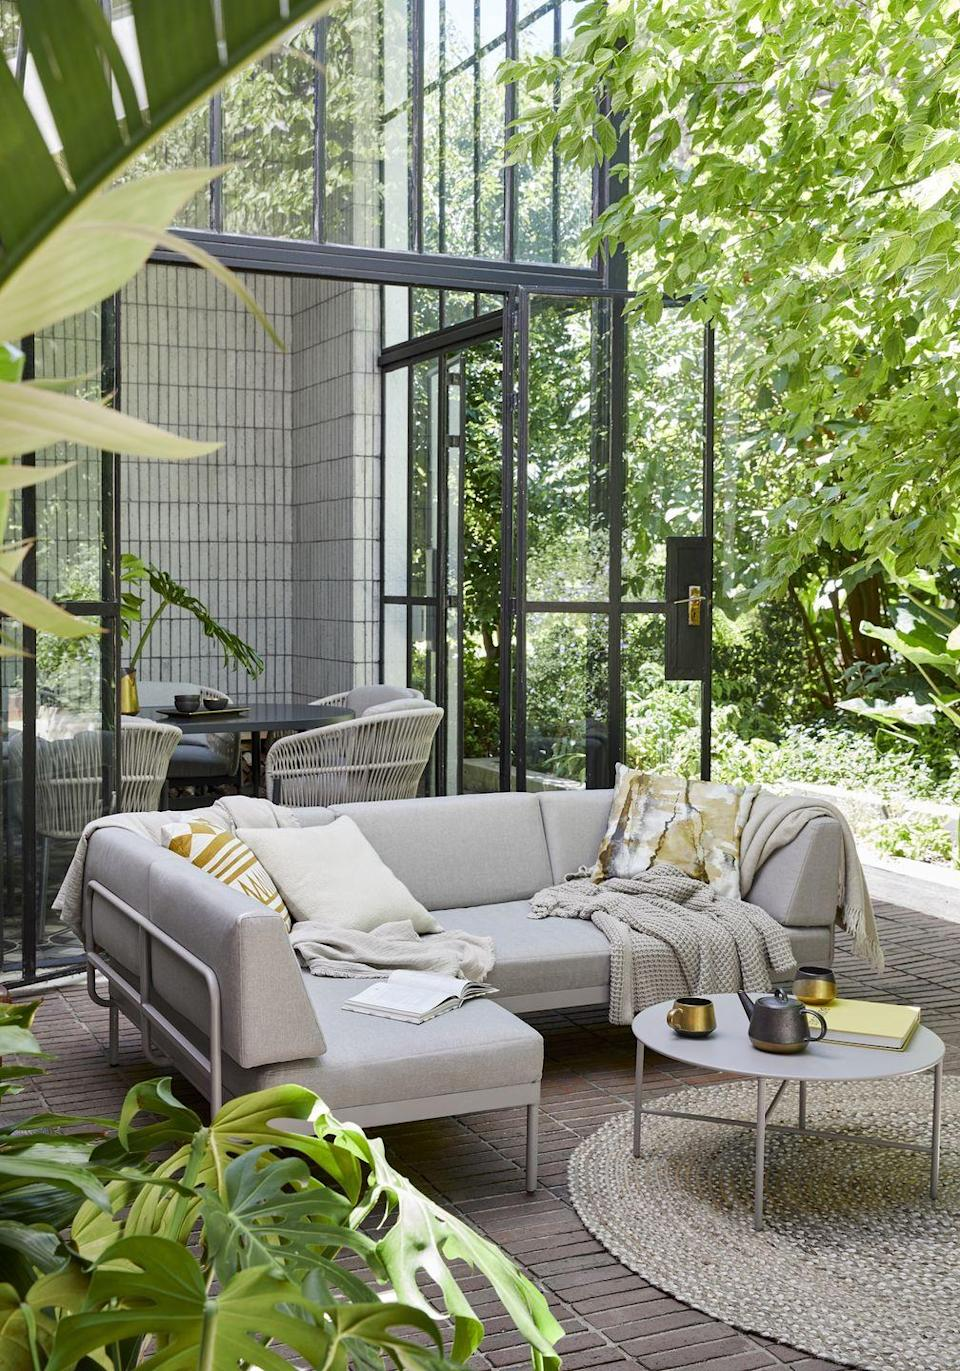 """<p>Spruce up your outdoor space with a cosy <a href=""""https://www.housebeautiful.com/uk/garden/g32443194/best-garden-sofa/"""" rel=""""nofollow noopener"""" target=""""_blank"""" data-ylk=""""slk:corner sofa"""" class=""""link rapid-noclick-resp"""">corner sofa</a>. Complete the look with a selection of outdoor cushions and a string of glistening festoon lights. </p><p><a class=""""link rapid-noclick-resp"""" href=""""https://go.redirectingat.com?id=127X1599956&url=https%3A%2F%2Fwww.johnlewis.com%2Fbrowse%2Ffurniture-lights%2Fgarden%2Fgarden-furniture-sets%2Fgarden-sofa-sets%2F_%2FN-5unsZ1yzi23x&sref=https%3A%2F%2Fwww.housebeautiful.com%2Fuk%2Flifestyle%2Fg35954786%2Fjohn-lewis-garden-collection-spring-summer%2F"""" rel=""""nofollow noopener"""" target=""""_blank"""" data-ylk=""""slk:SHOP NOW"""">SHOP NOW</a></p>"""